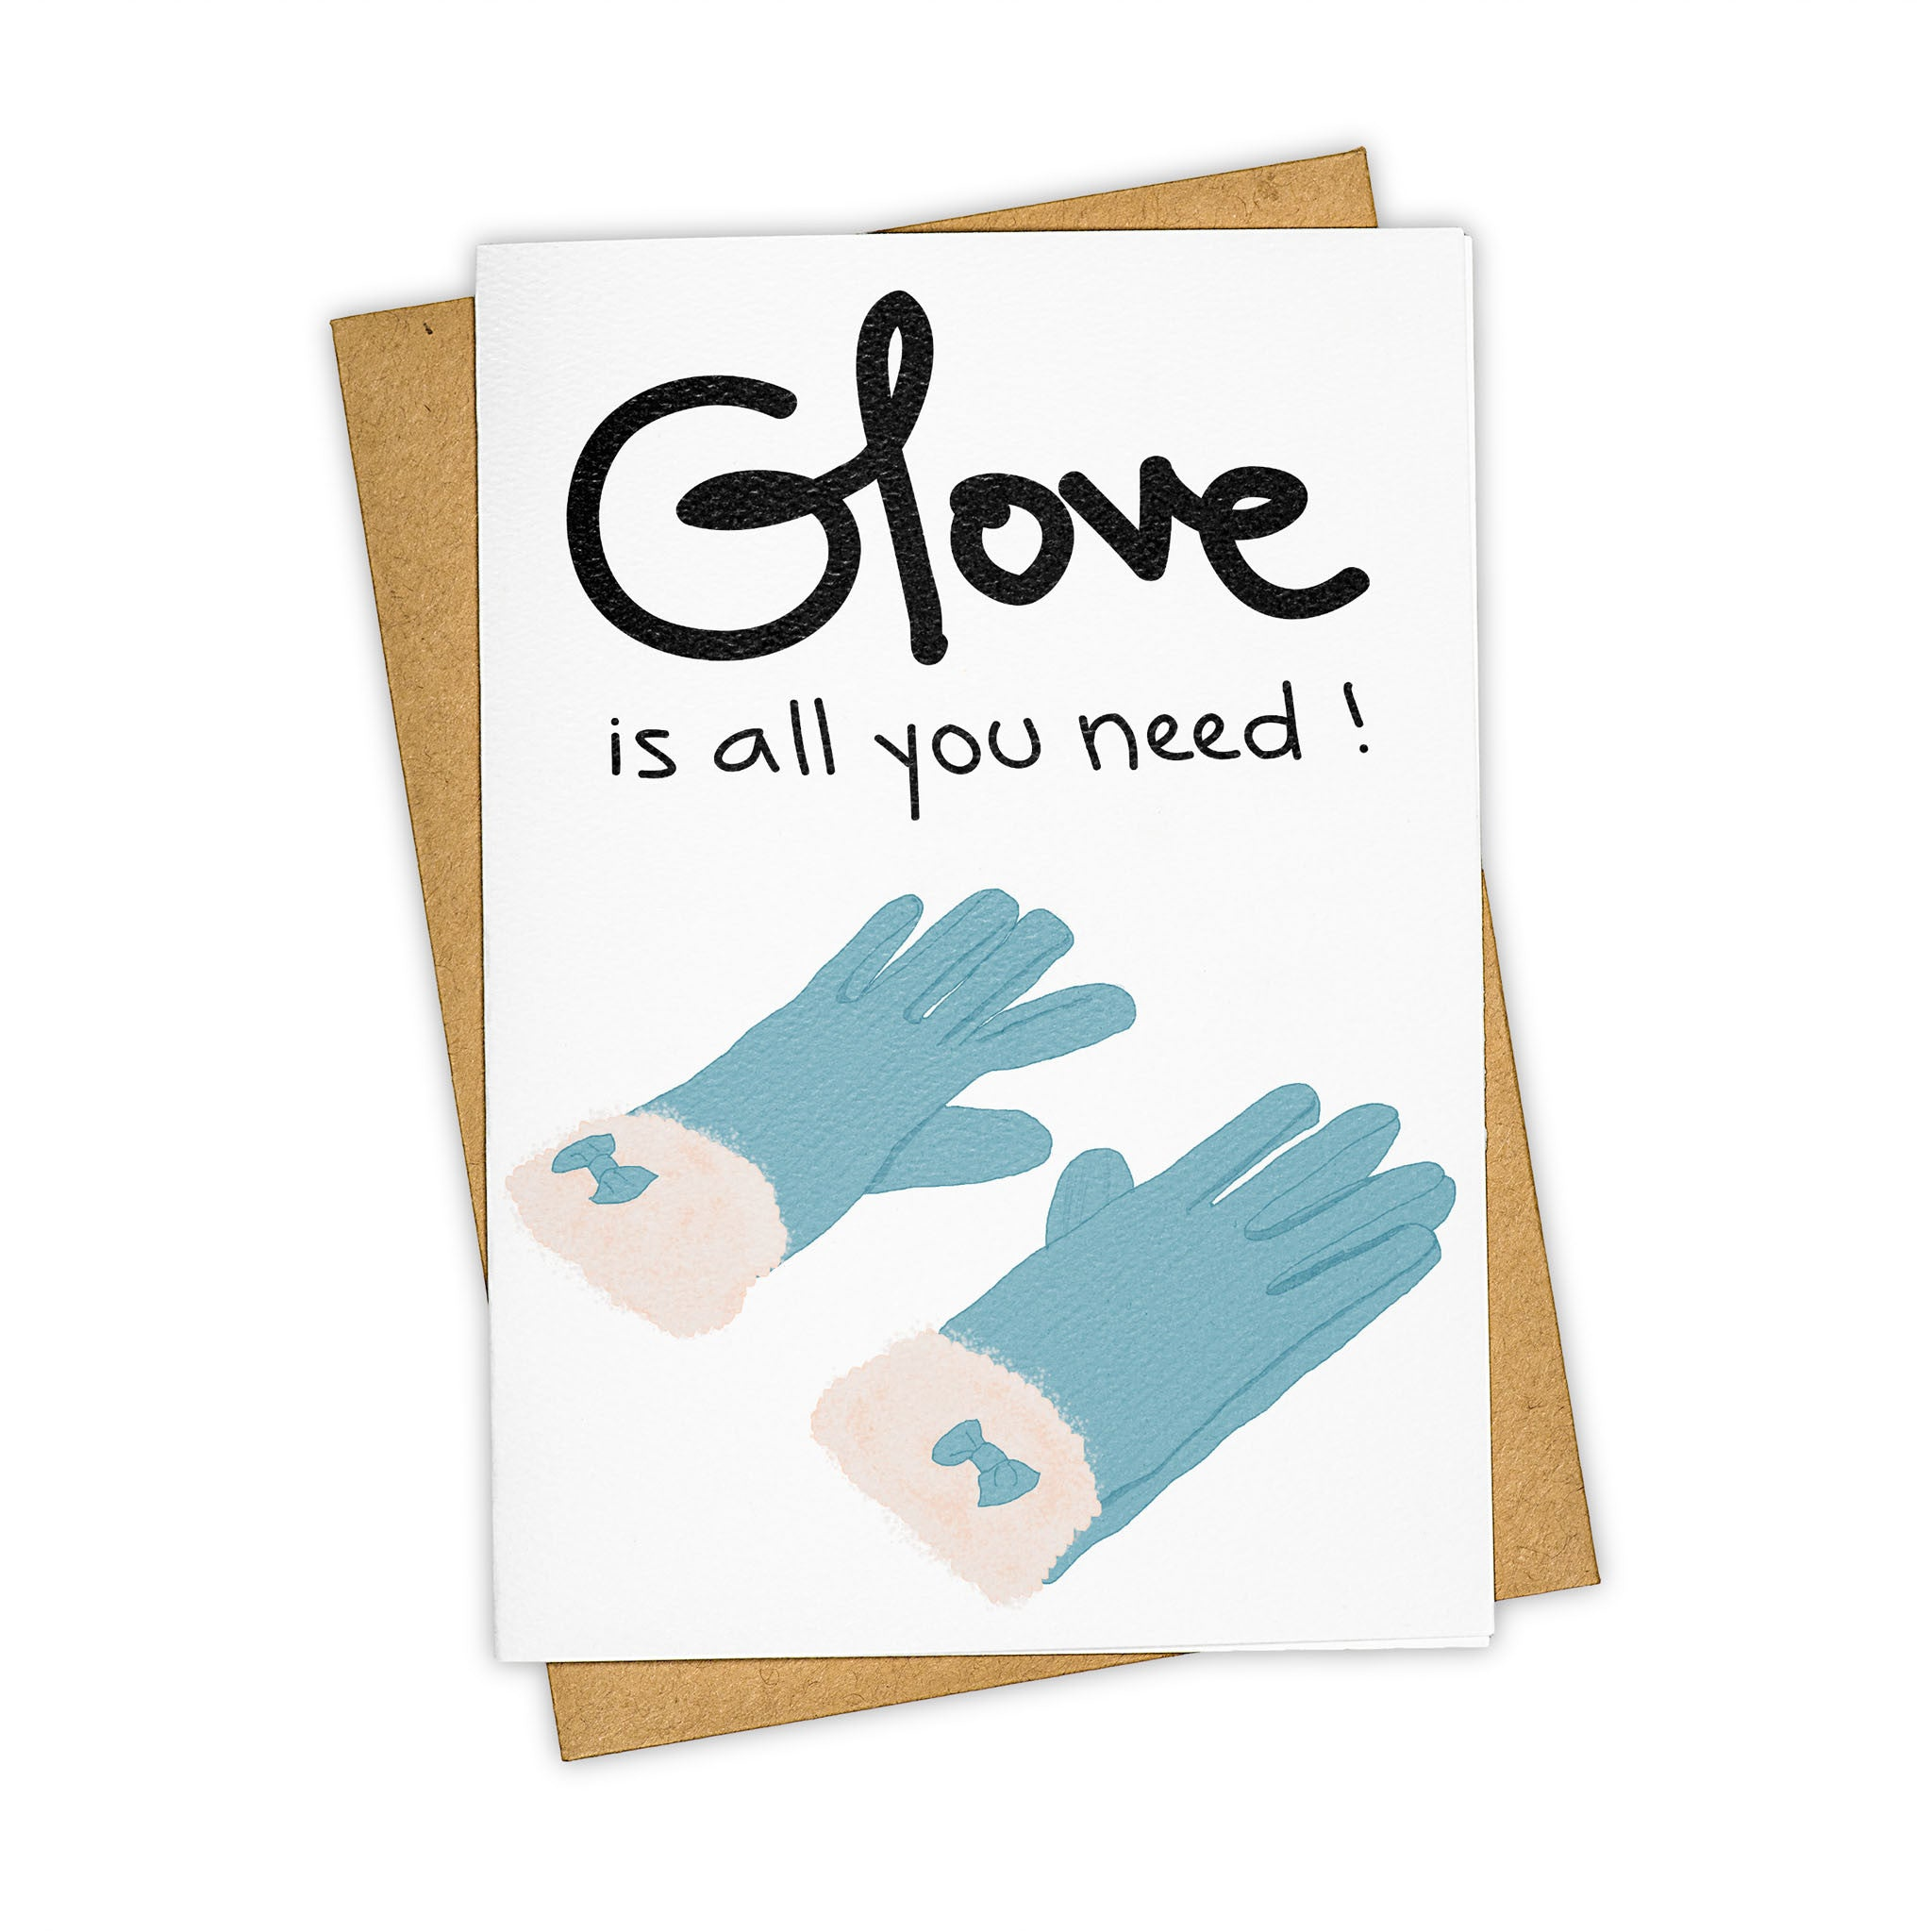 Glove is All You Need